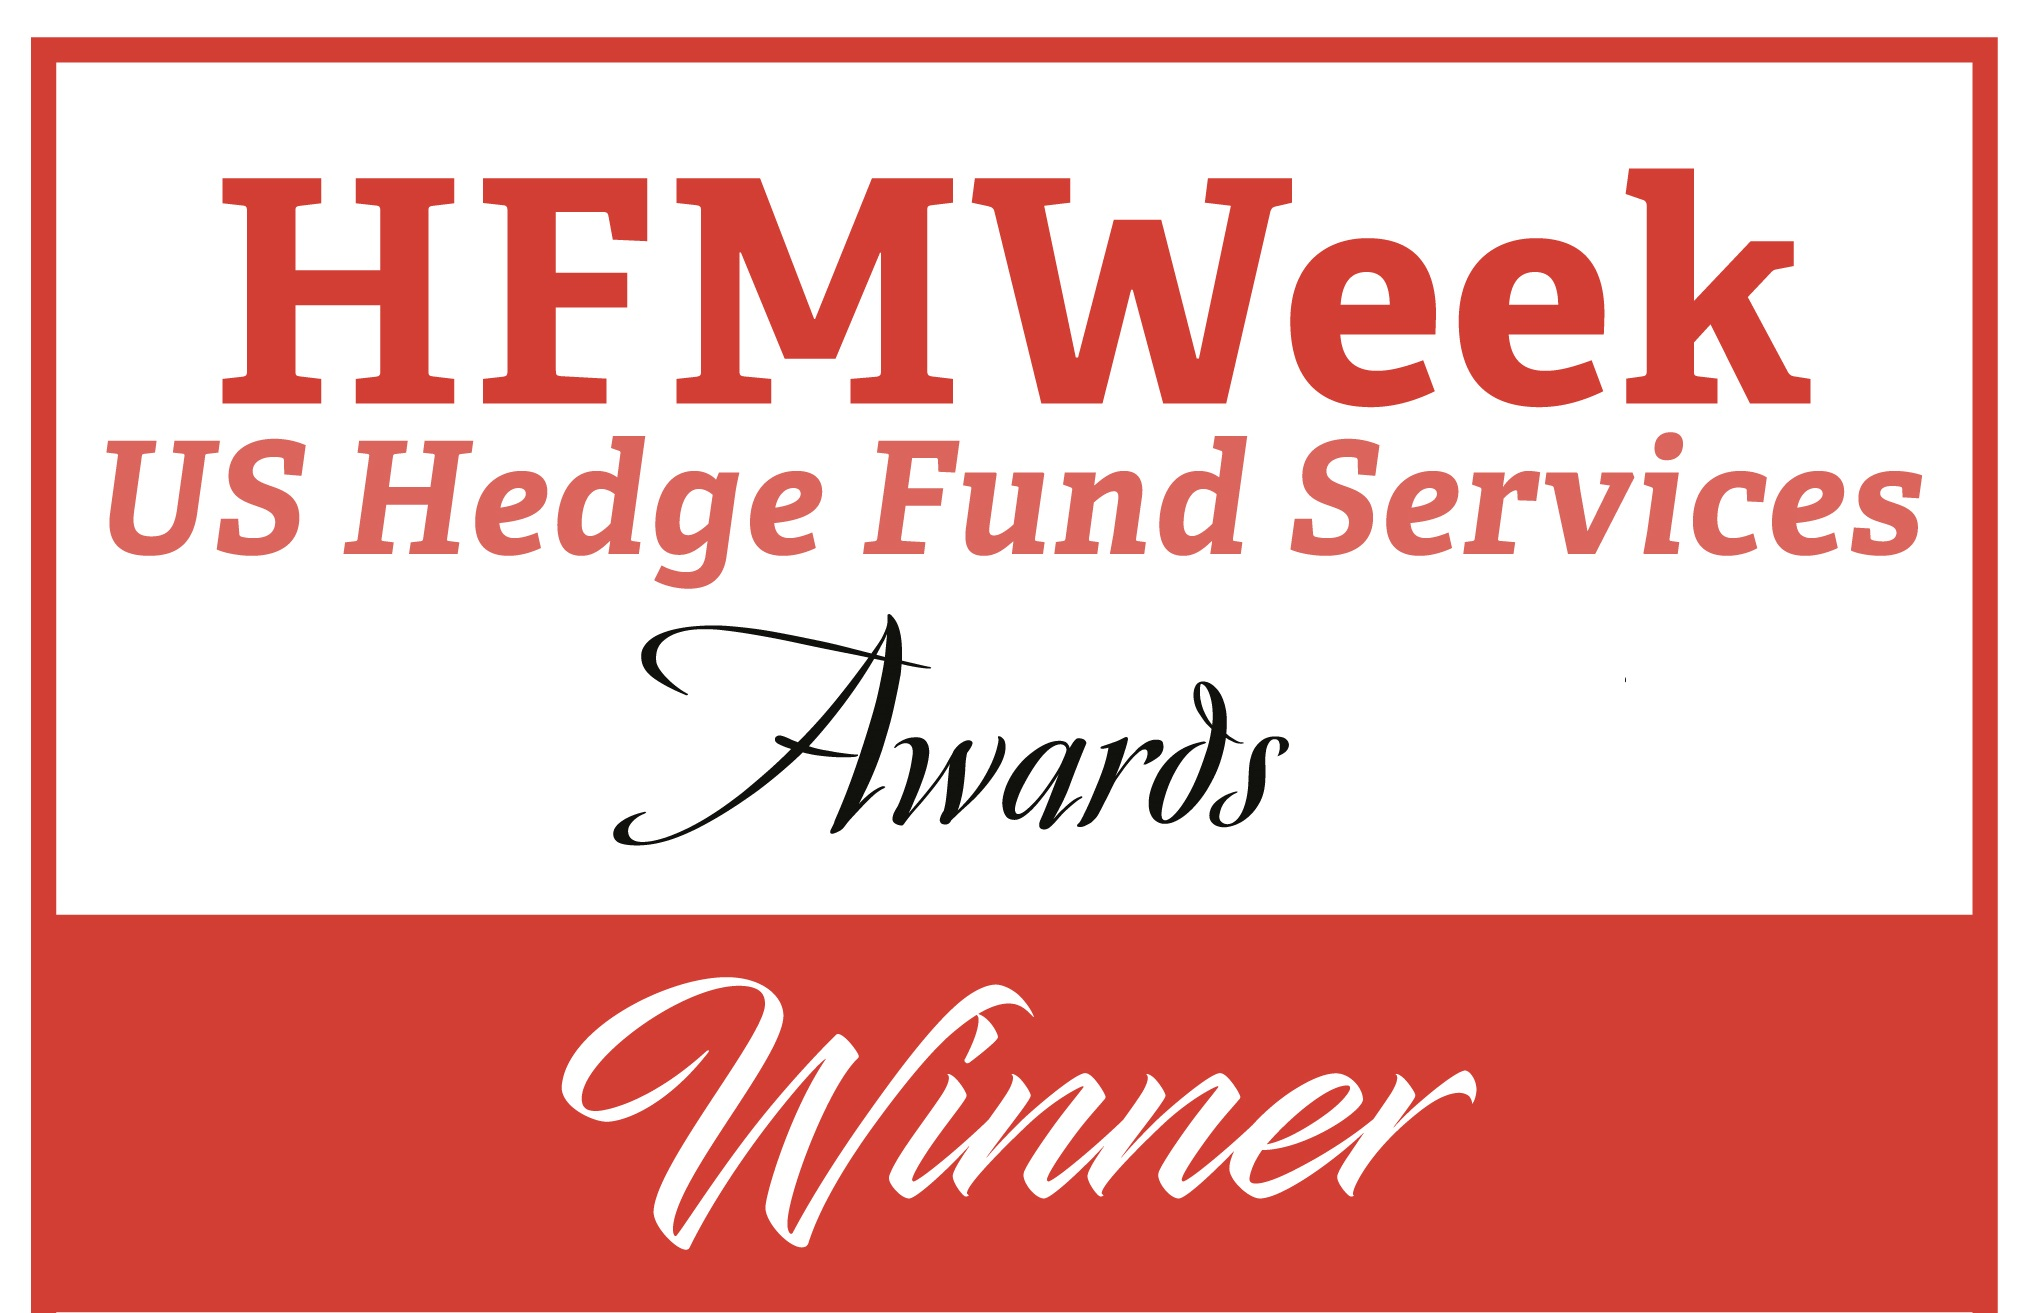 HFM U.S. Hedge Fund Services Awards